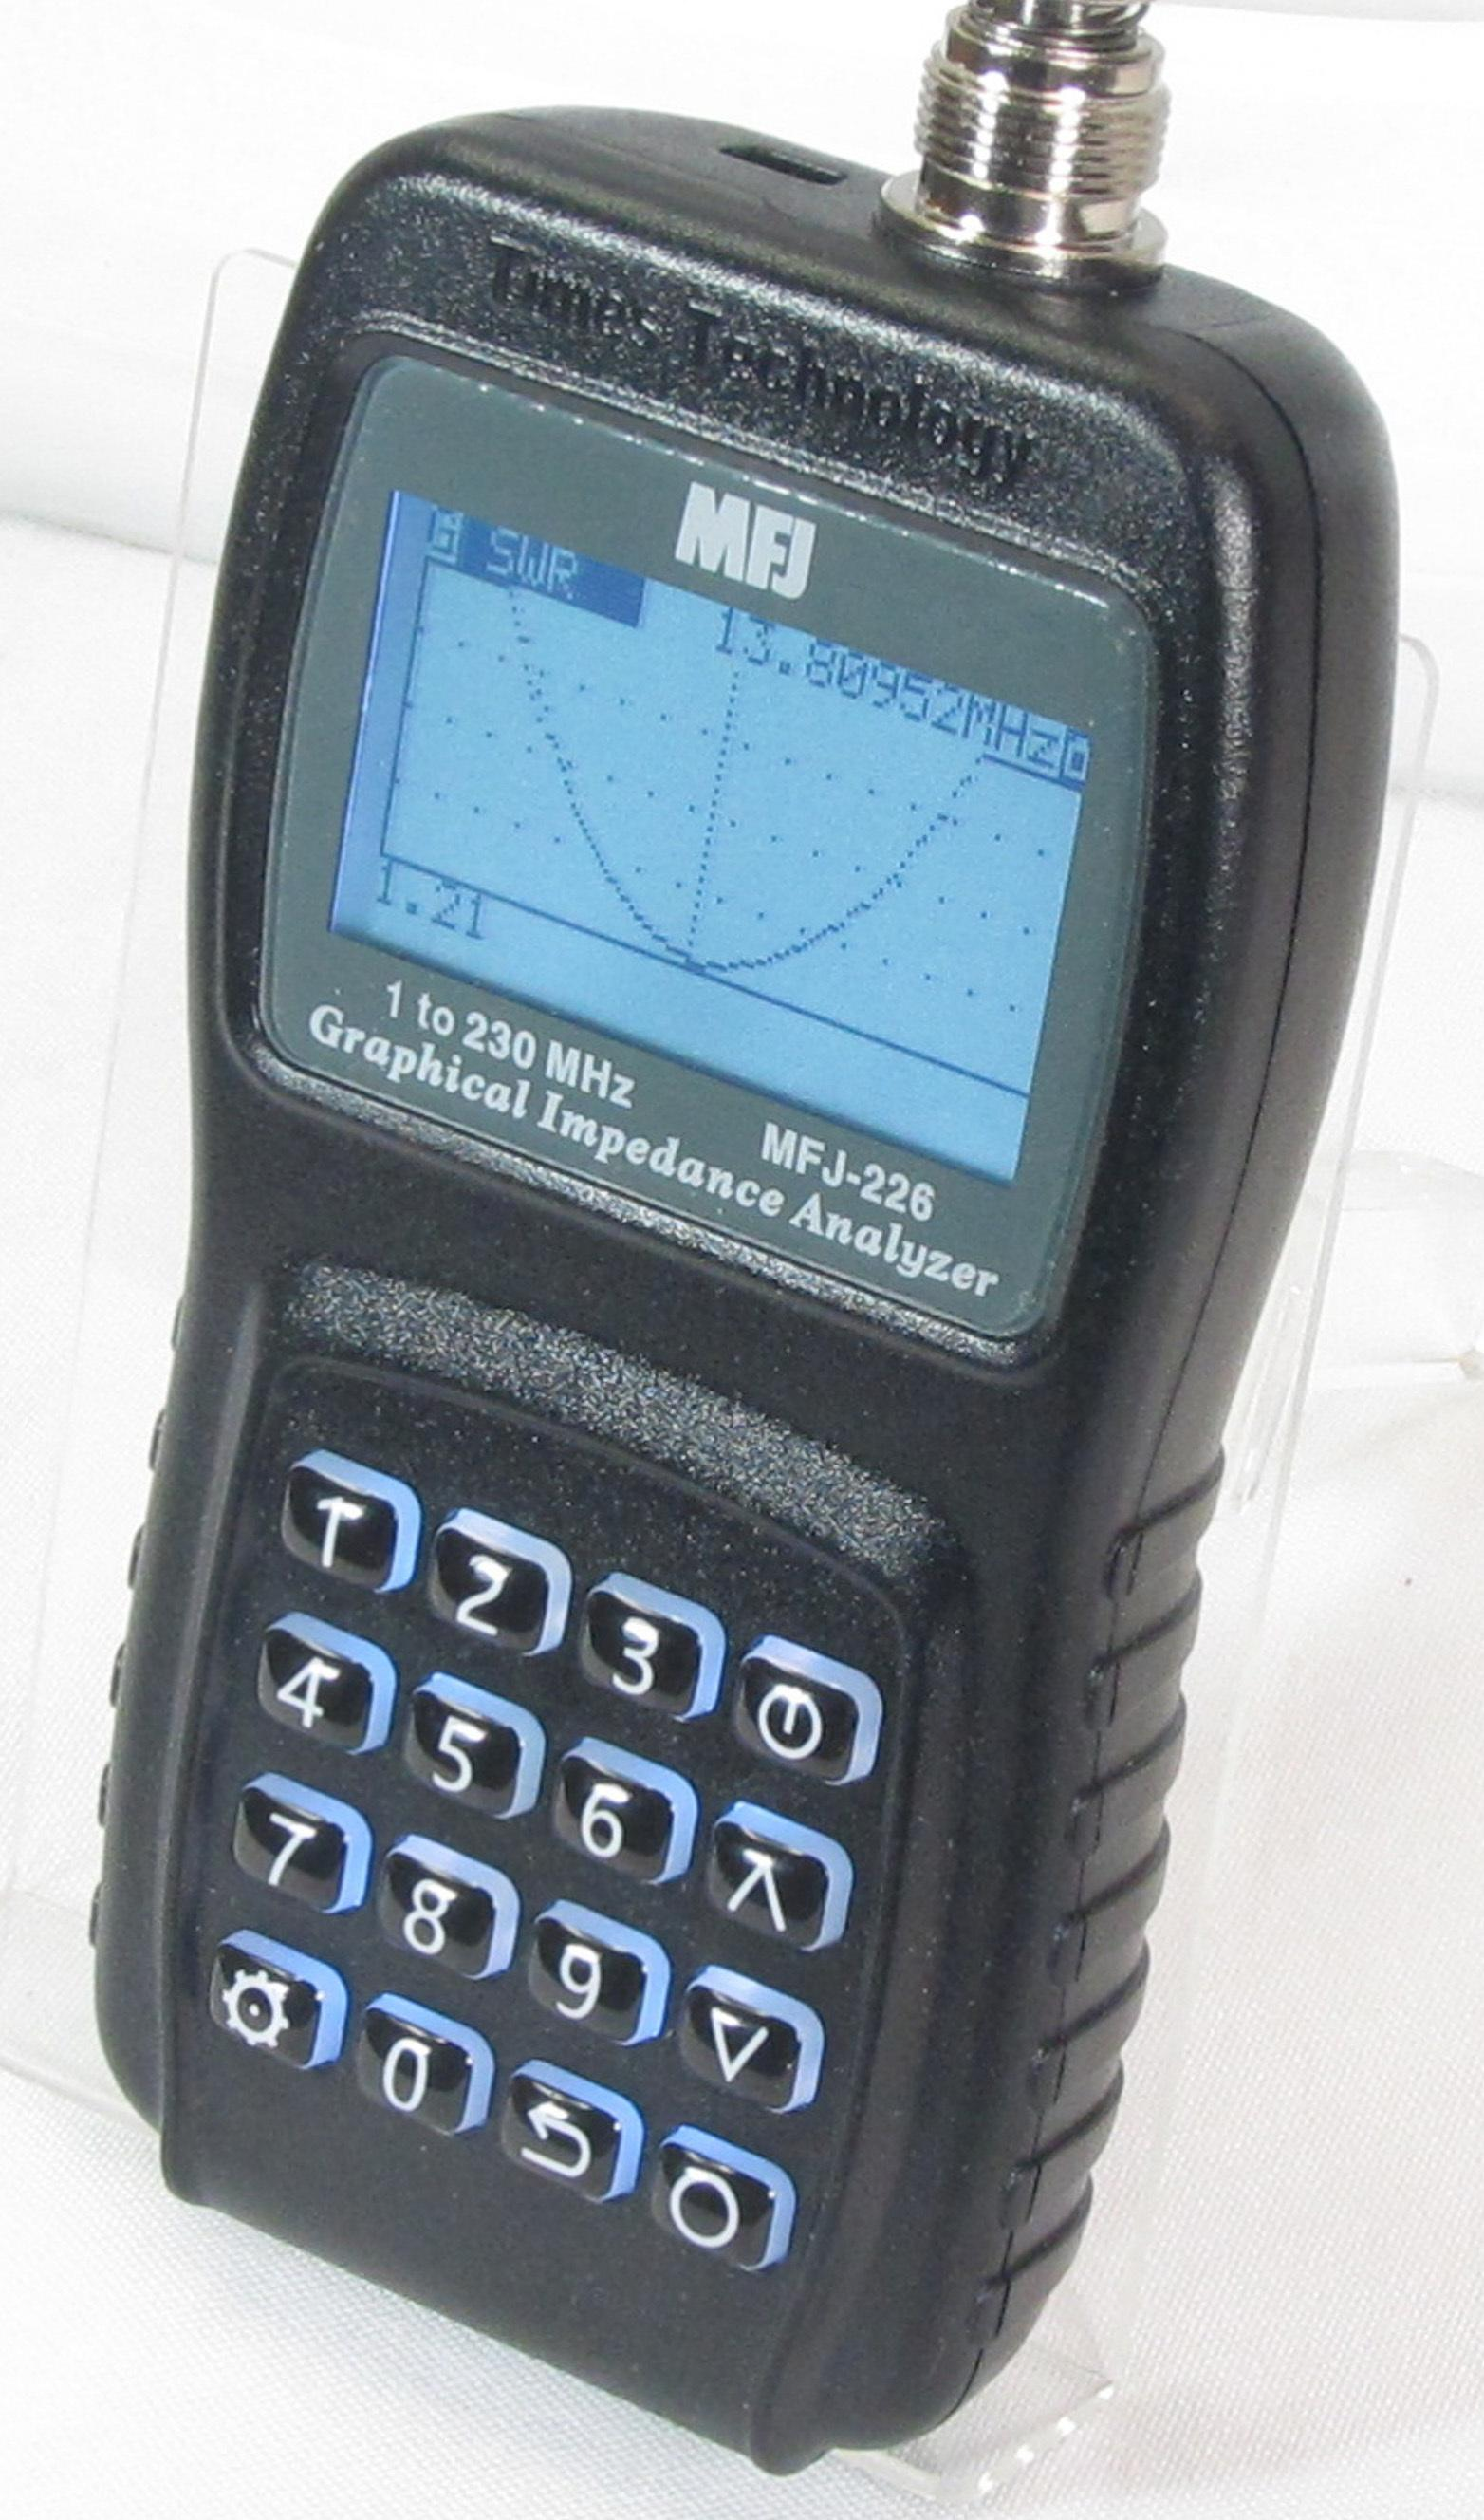 MFJ-226 Antenna Analyzer covers 1 to 230 MHz, 1Hz resolution.